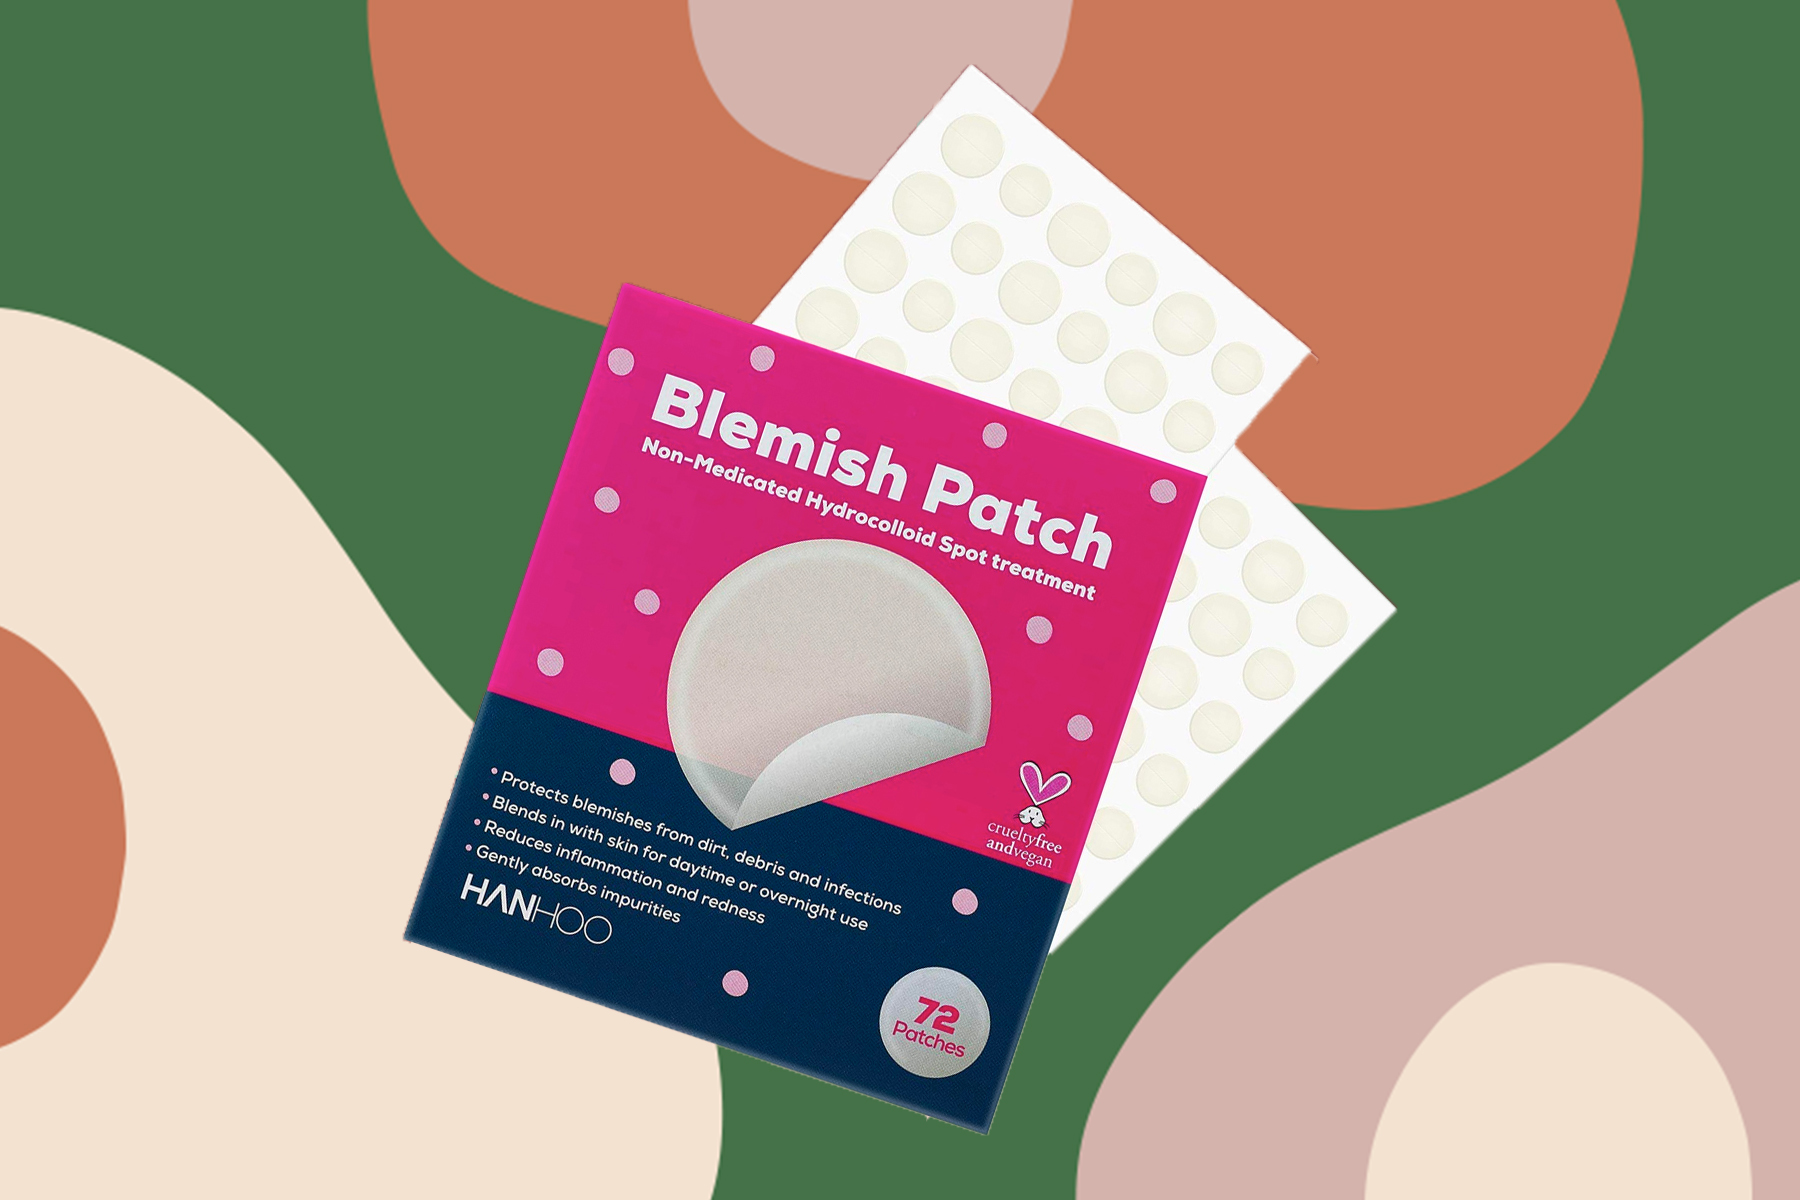 blemish patches